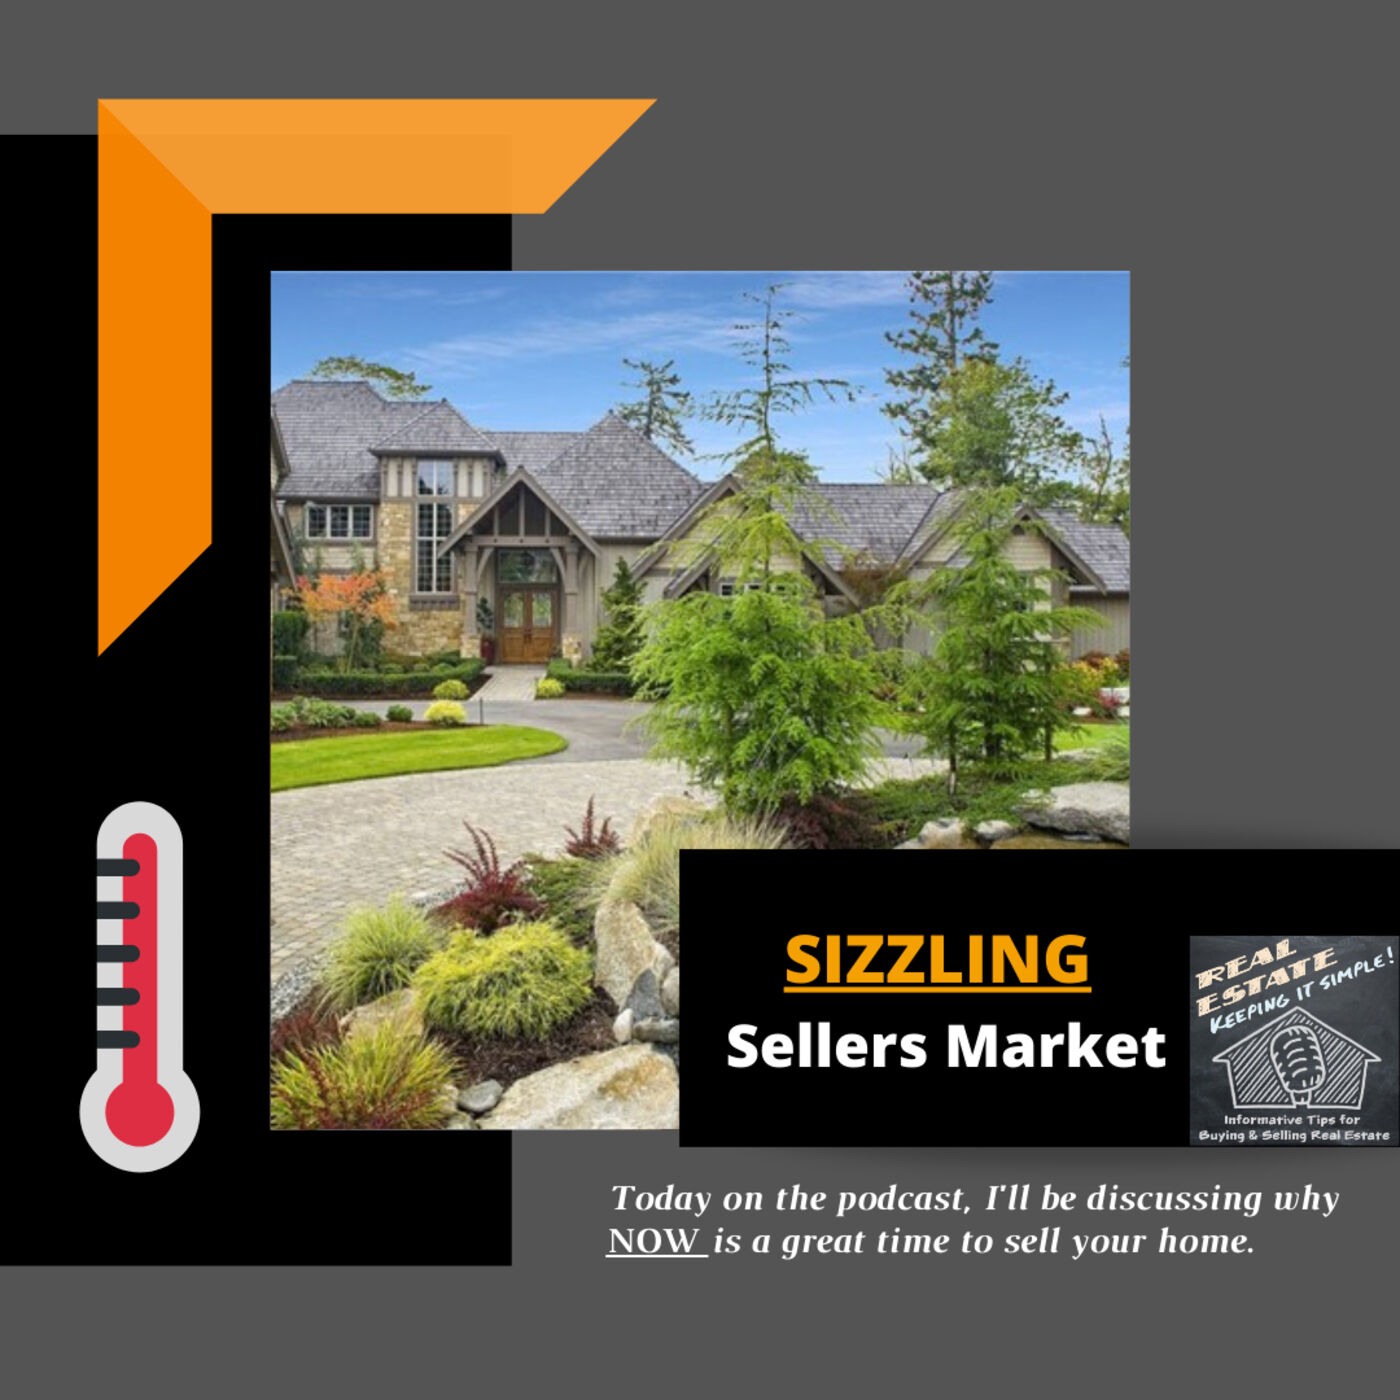 Hot Sellers Market and choosing the right agent